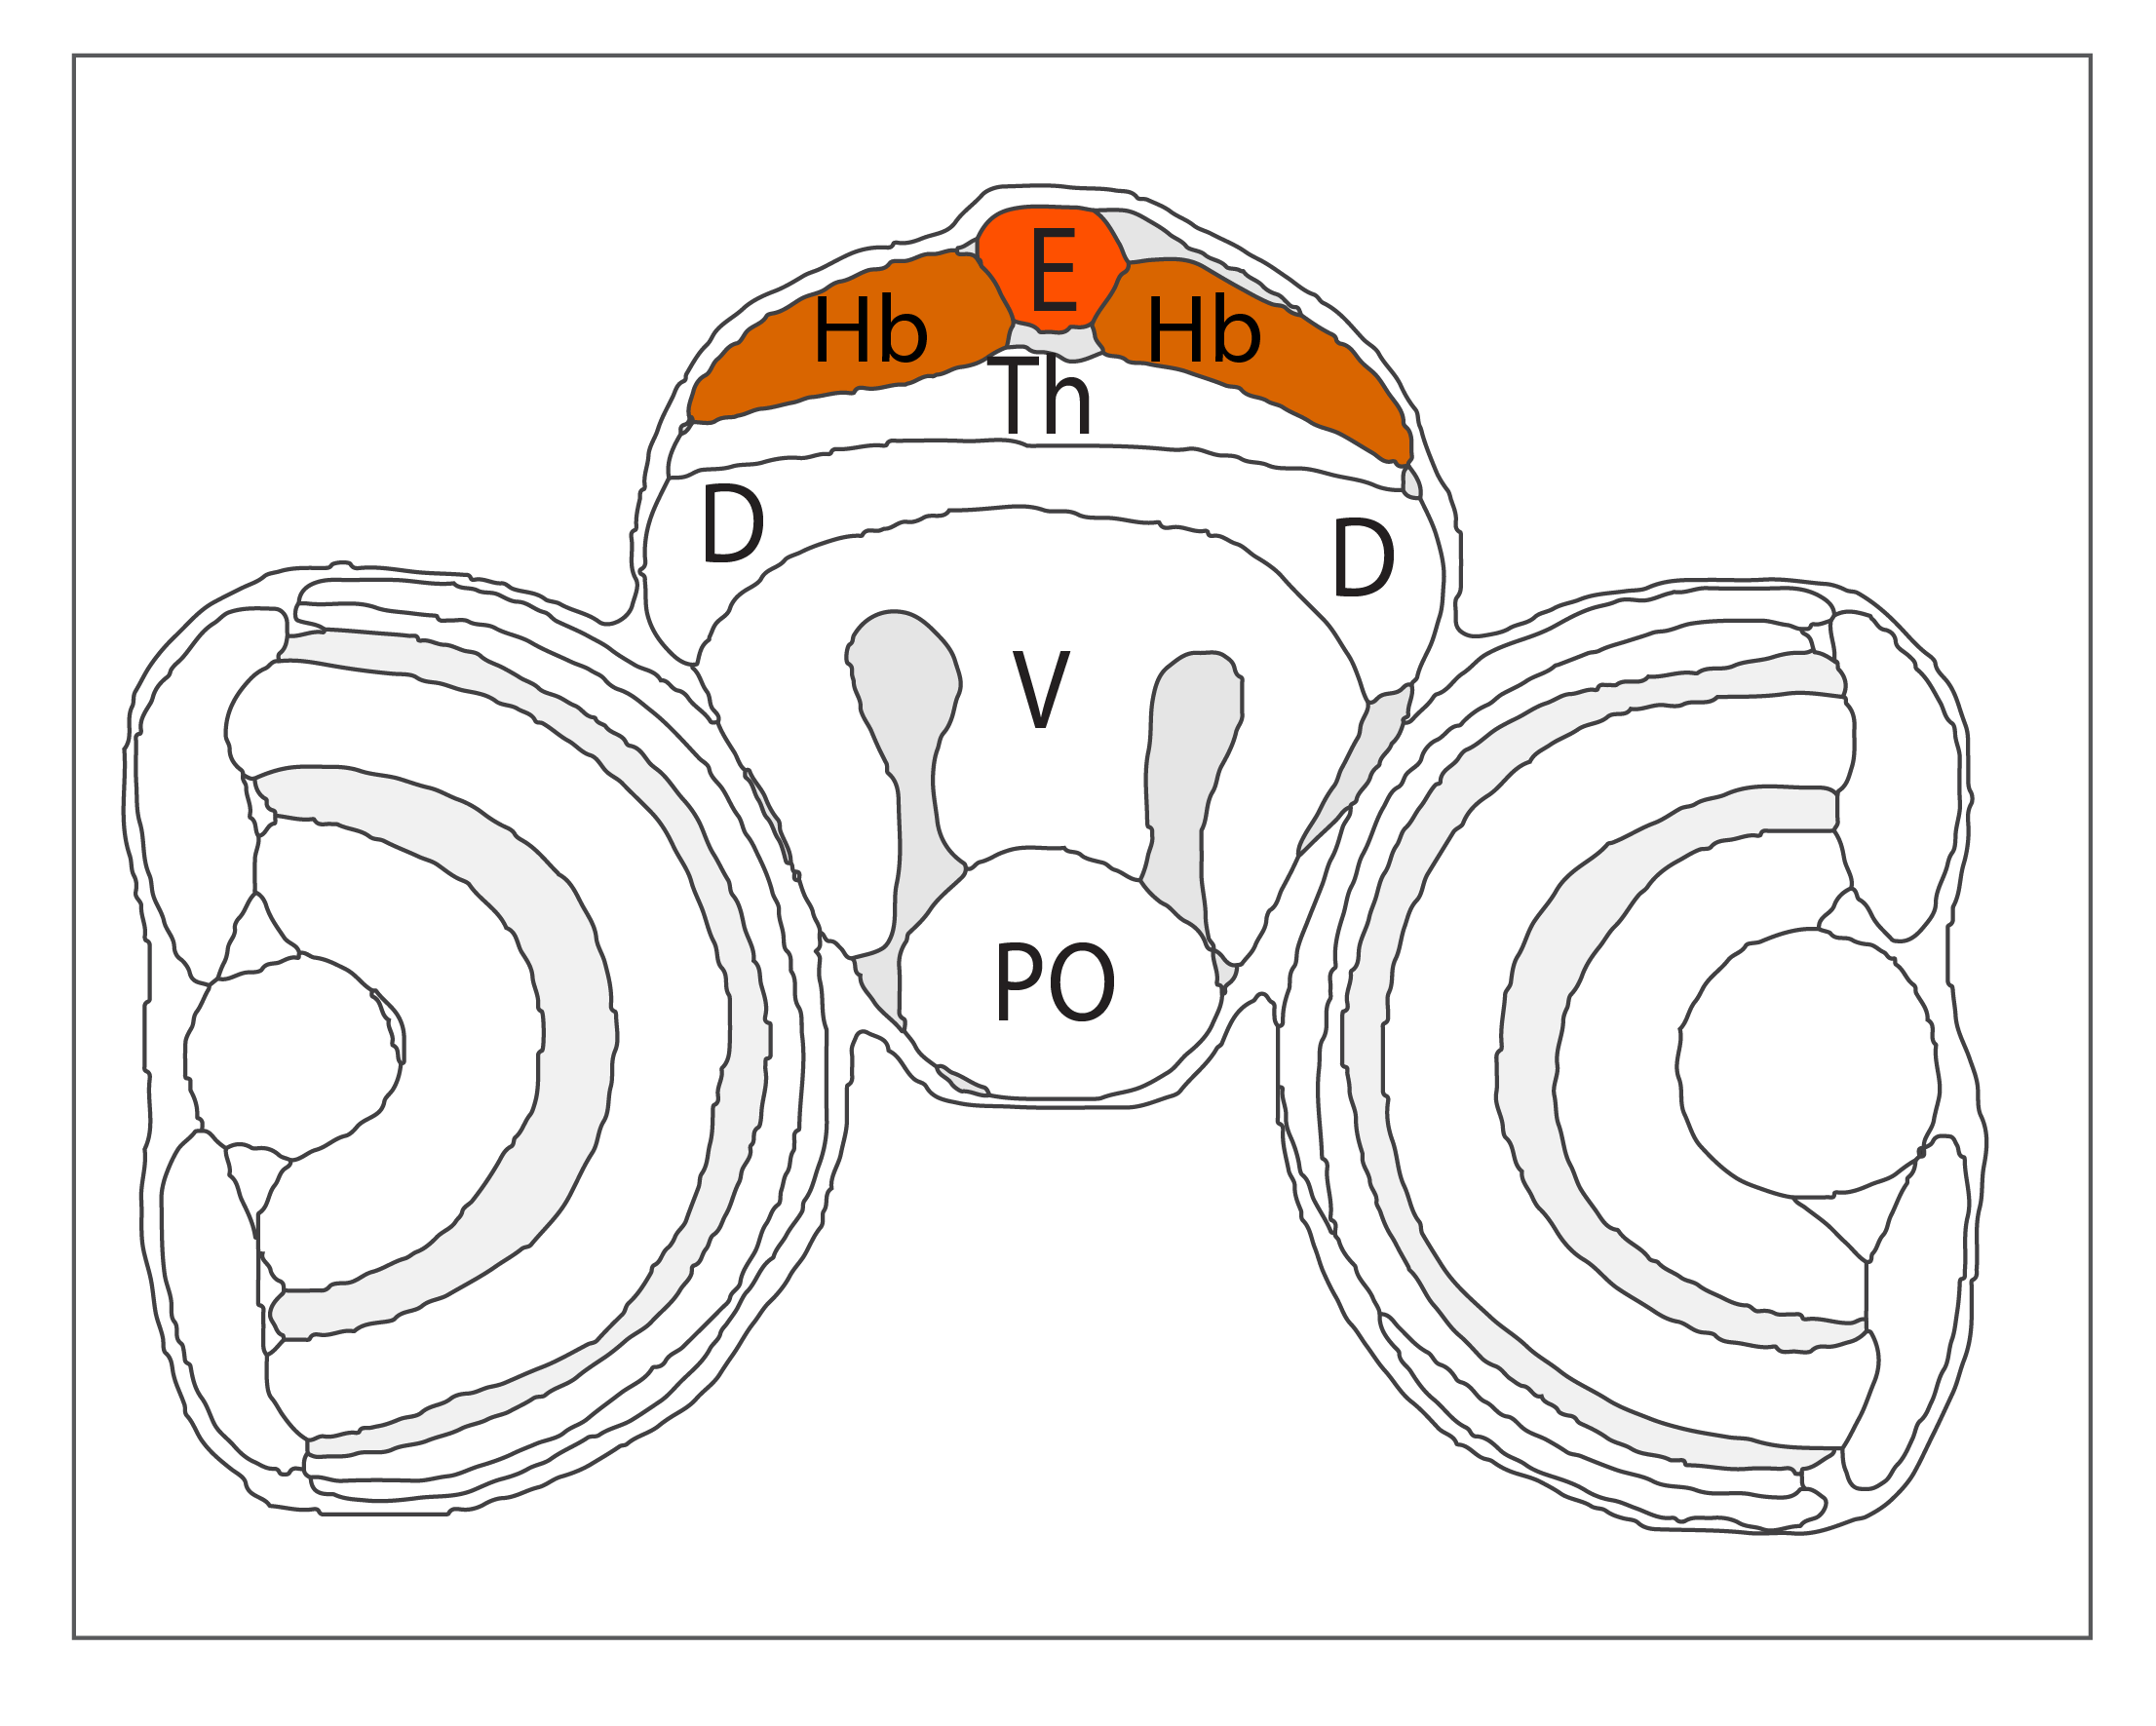 Schematic showing the position of the epitahlmus in a coronal section through the zebrafish brain.  Based on the anatomical segmentation of 3 day old zebrafish larval brain by Thomas Müller, Olaf Ronneberger, Wolfgang Driever and colleagues. For details see Ronneberger et al., Nat. Meth. 2012 and   http://vibez.informatik.uni-freiburg.de     Abbreviations: Ce, cerebellar plate; D, dorsal telencephalon/pallium; E, epiphysis; EmT, eminentia thalami; Hb, habenula; Hyp, hypothalamus; MO, medulla oblongata; OB, olfactory bulb; OT, optic tectum; PG, preglomerular complex; PO, preoptic area;PrT, pretectum; PTd, posterior tuberculum dorsal part; PTh, prethalamus; PTv posterior tuberculum ventral part; Teg, tegmentum; Th, thalamus; TS, torus semicircularis; V, ventral telencephalon/subpallium; Va, valvula cerebelli.